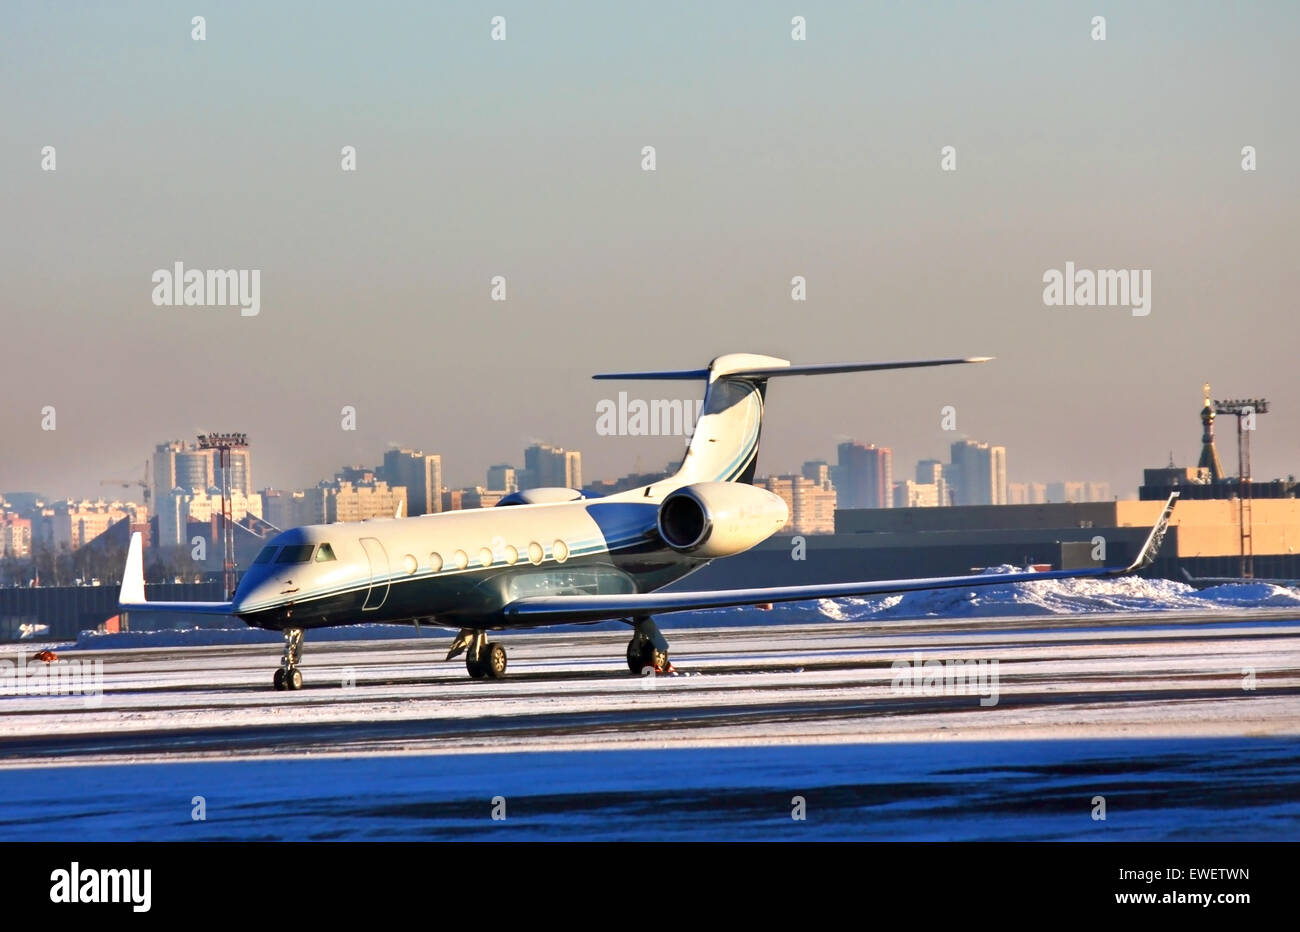 Twin-engined small jet on a parking place at the airport - Stock Image